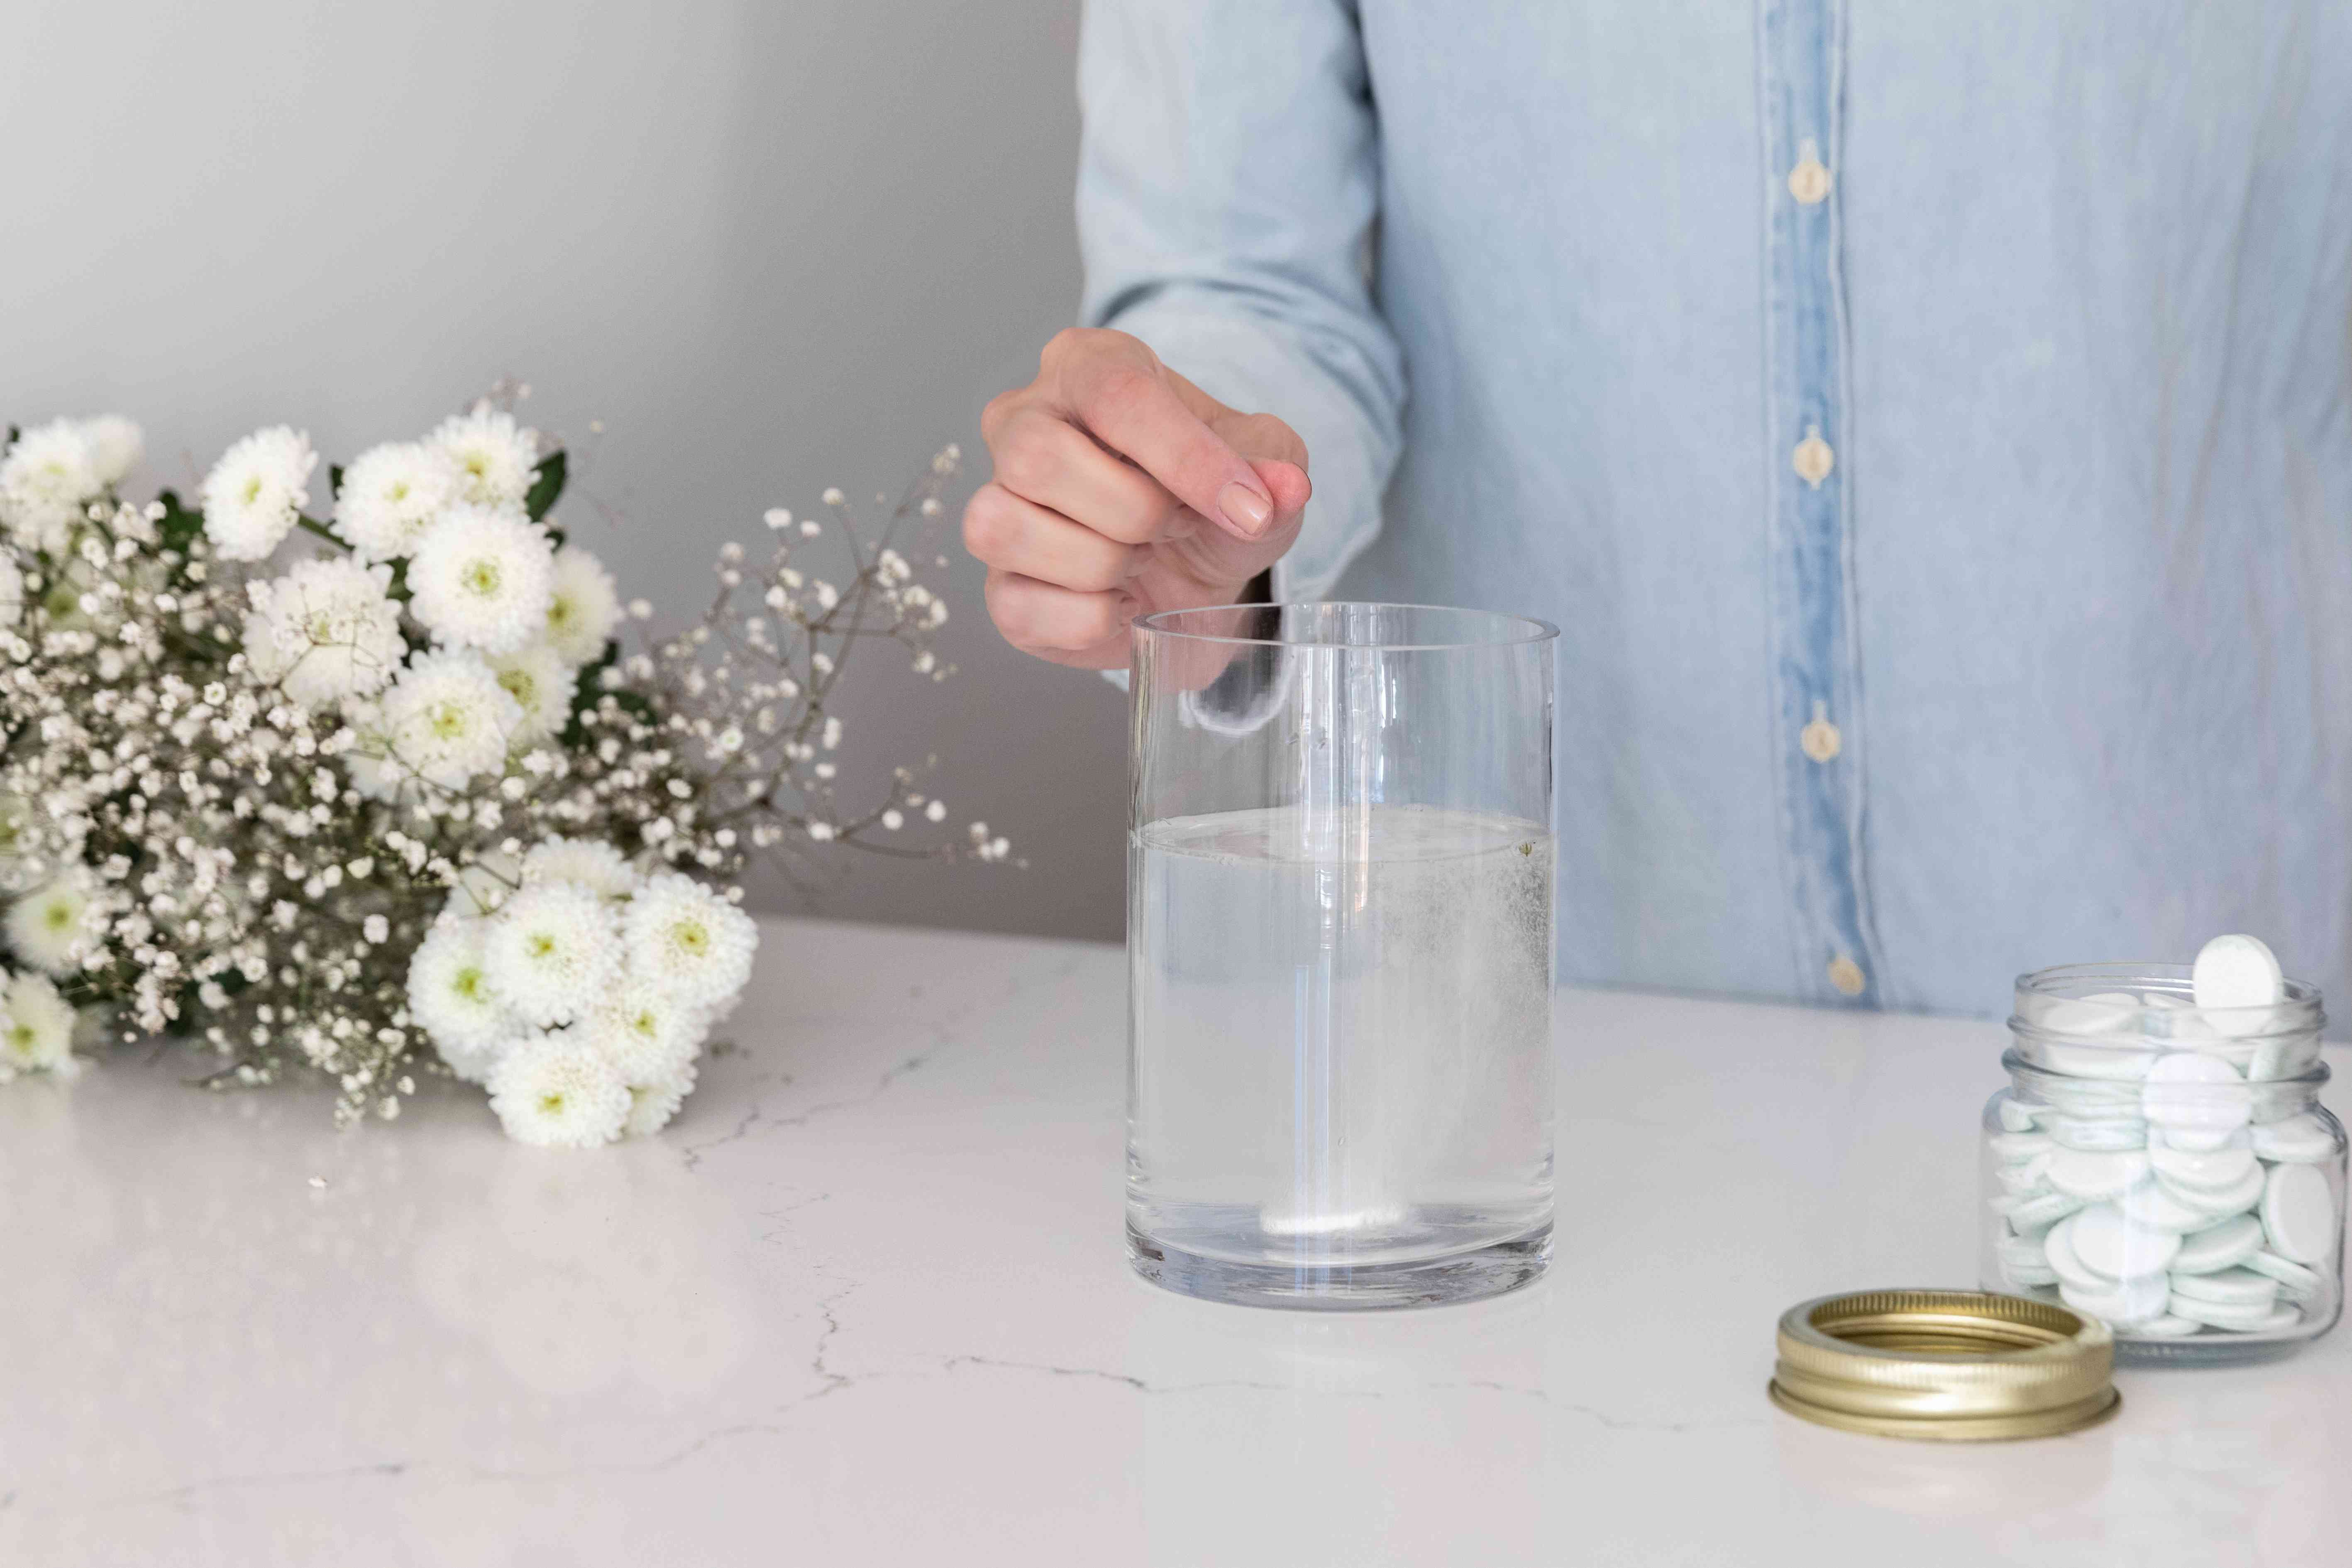 cleaning a vase with a denture tablet